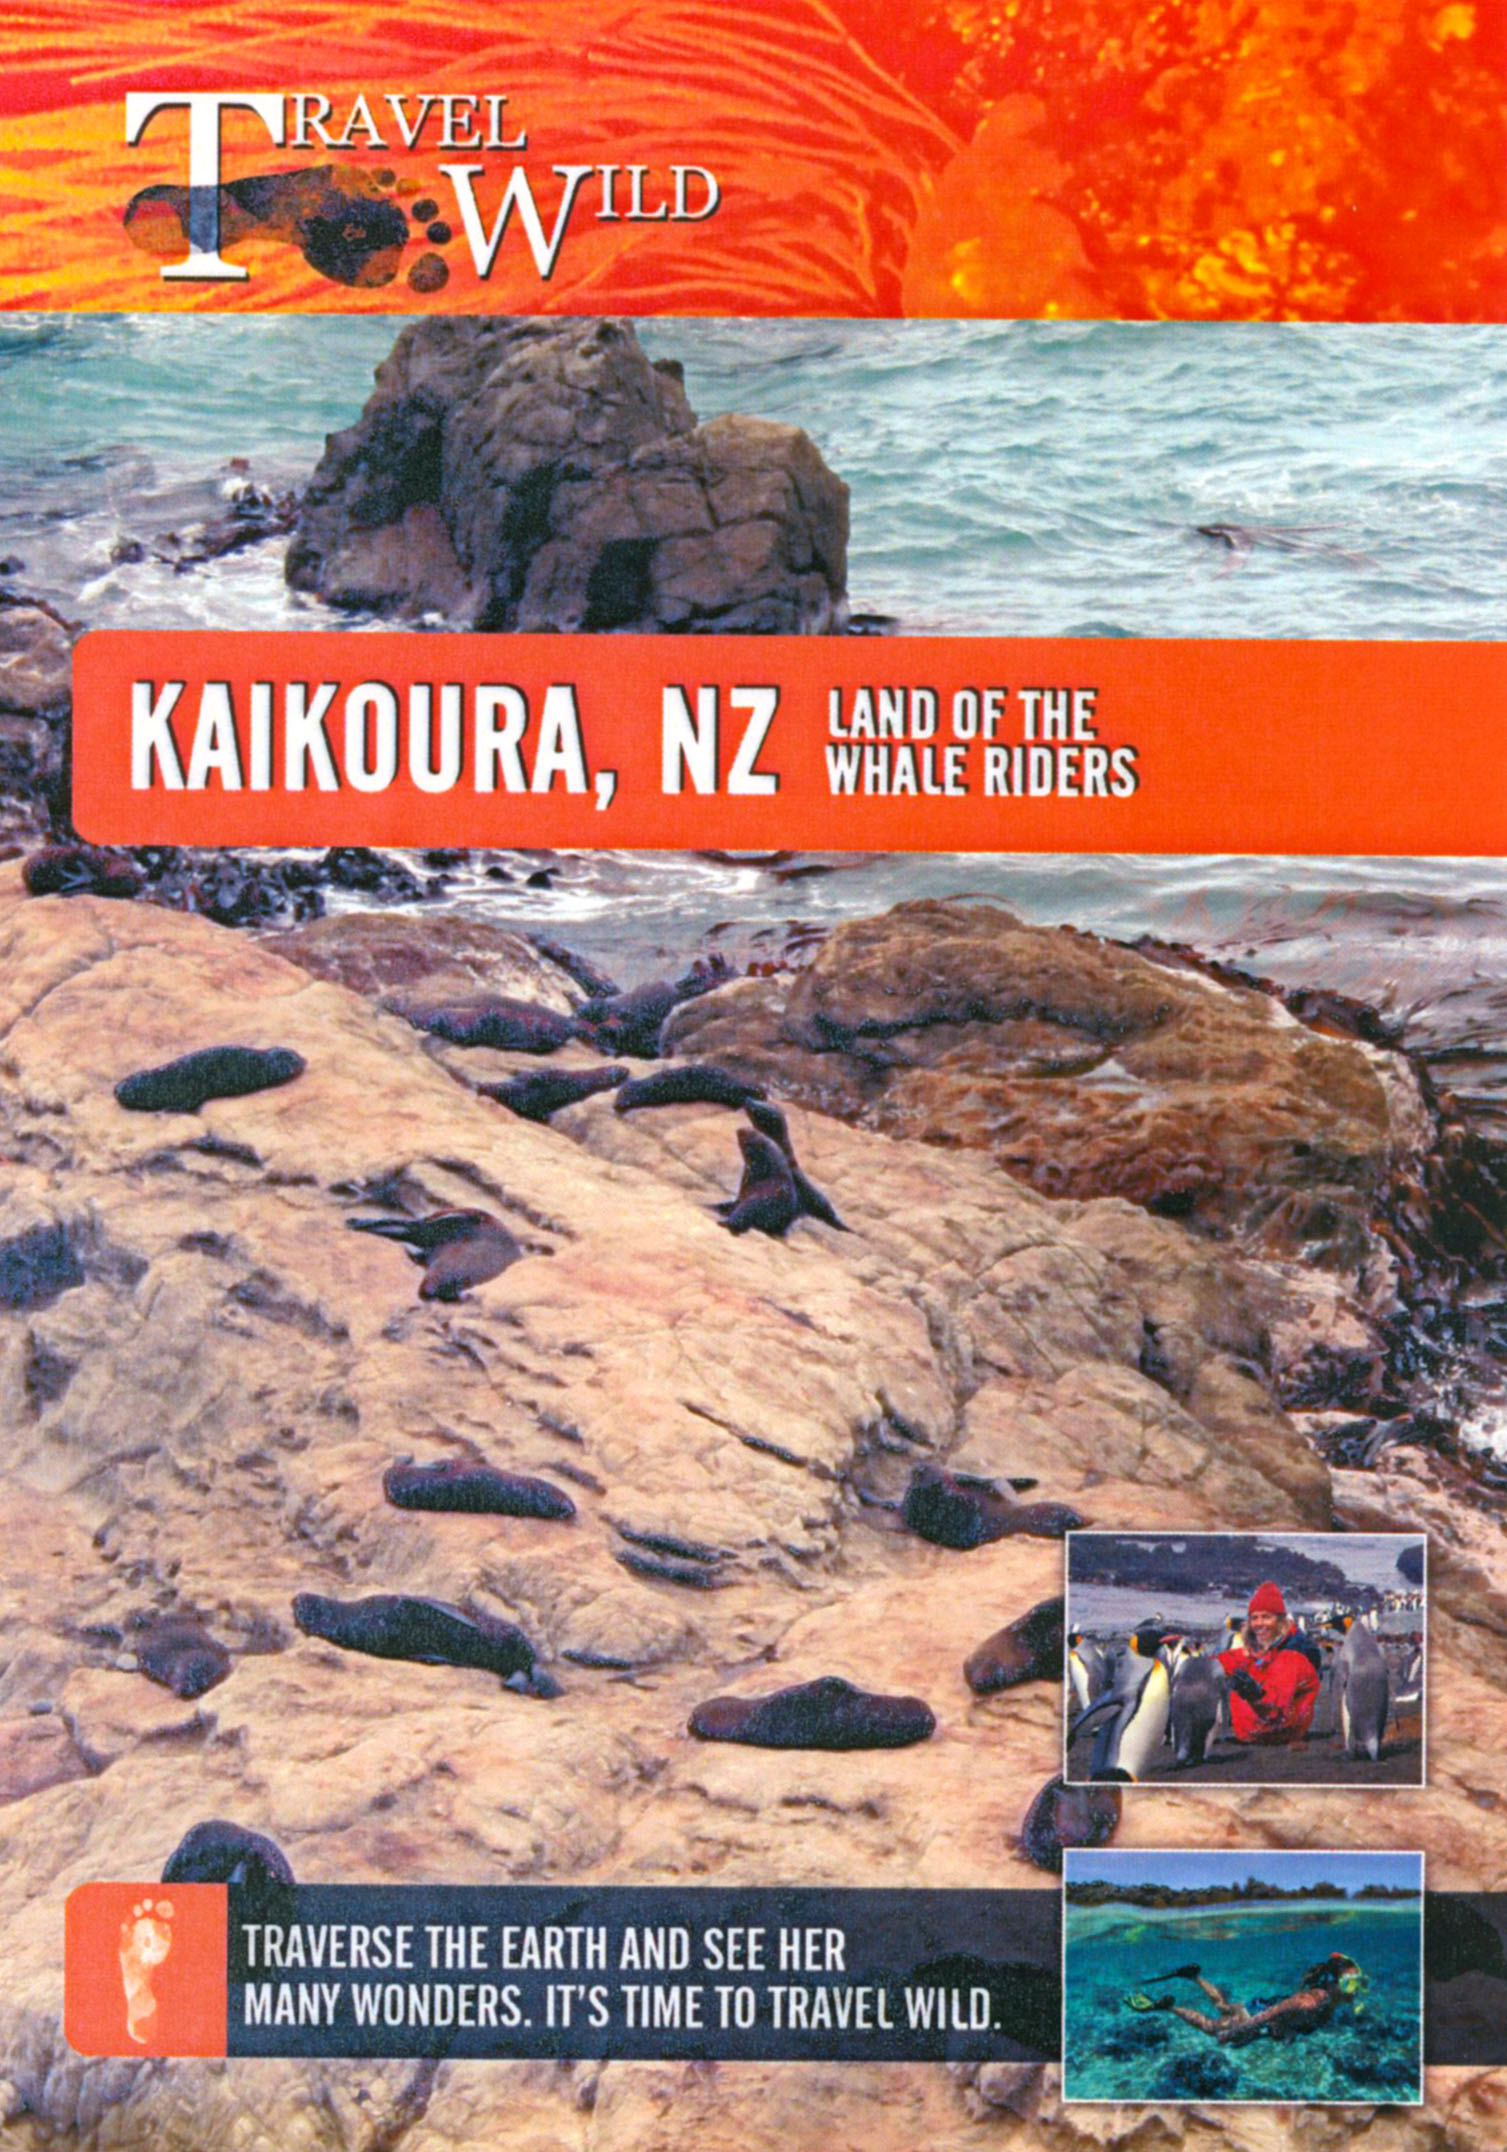 Travel Wild: Kaikoura, NZ - Land of the Whale Riders